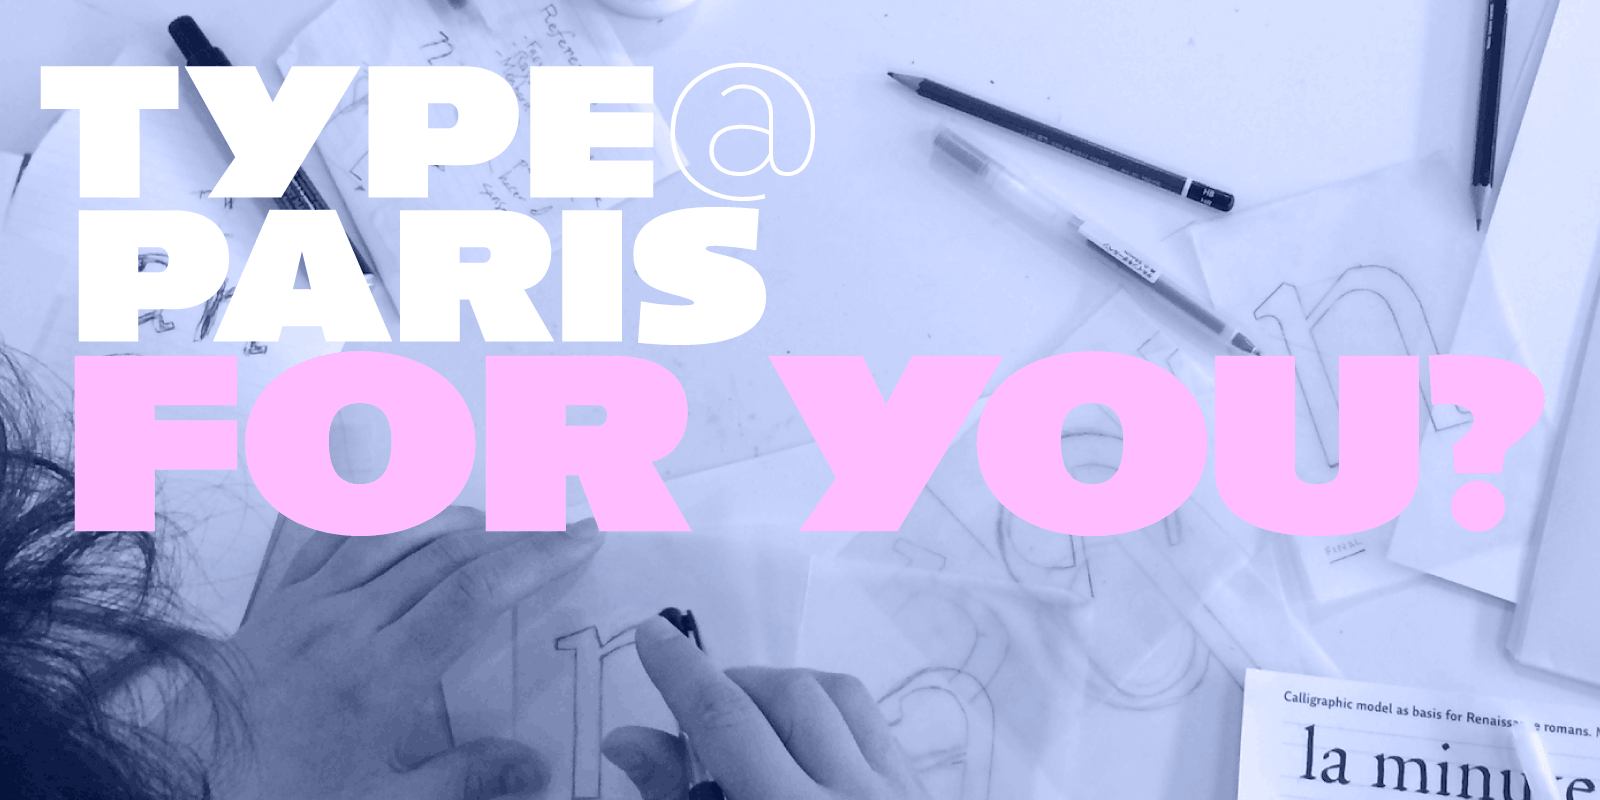 why I should apply to typeparis16?